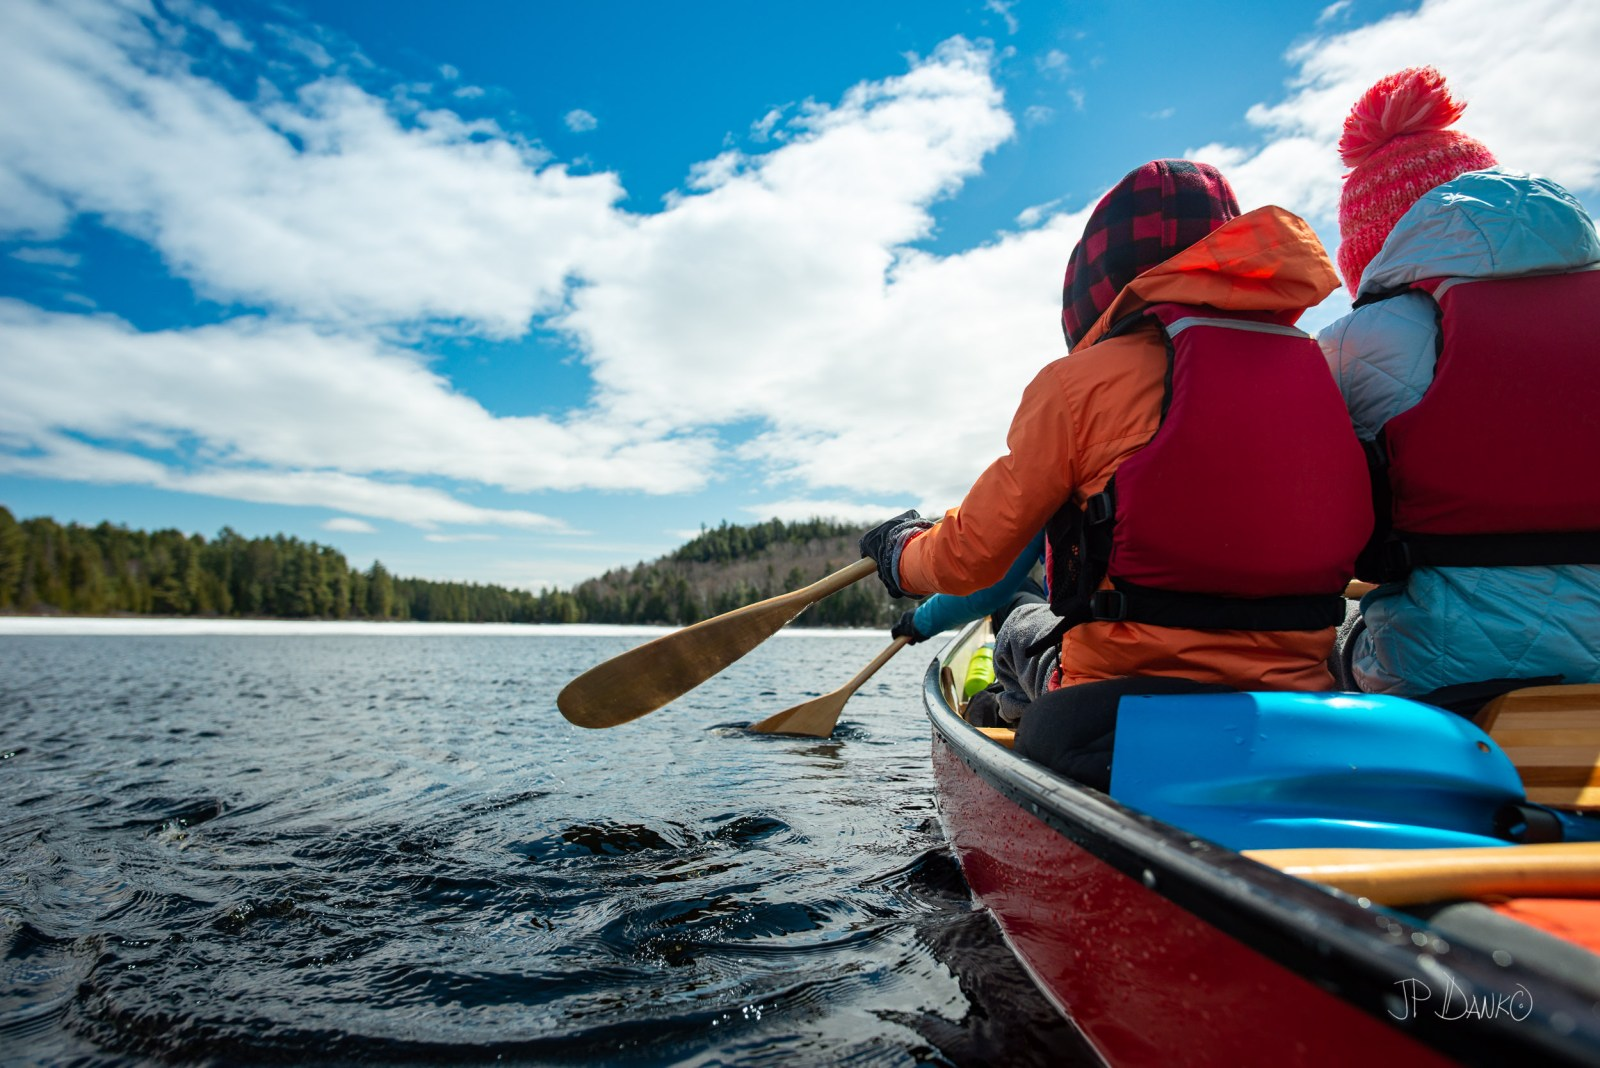 Spring Family Paddling Red Canoe Trip Backcountry Wilderness Ice